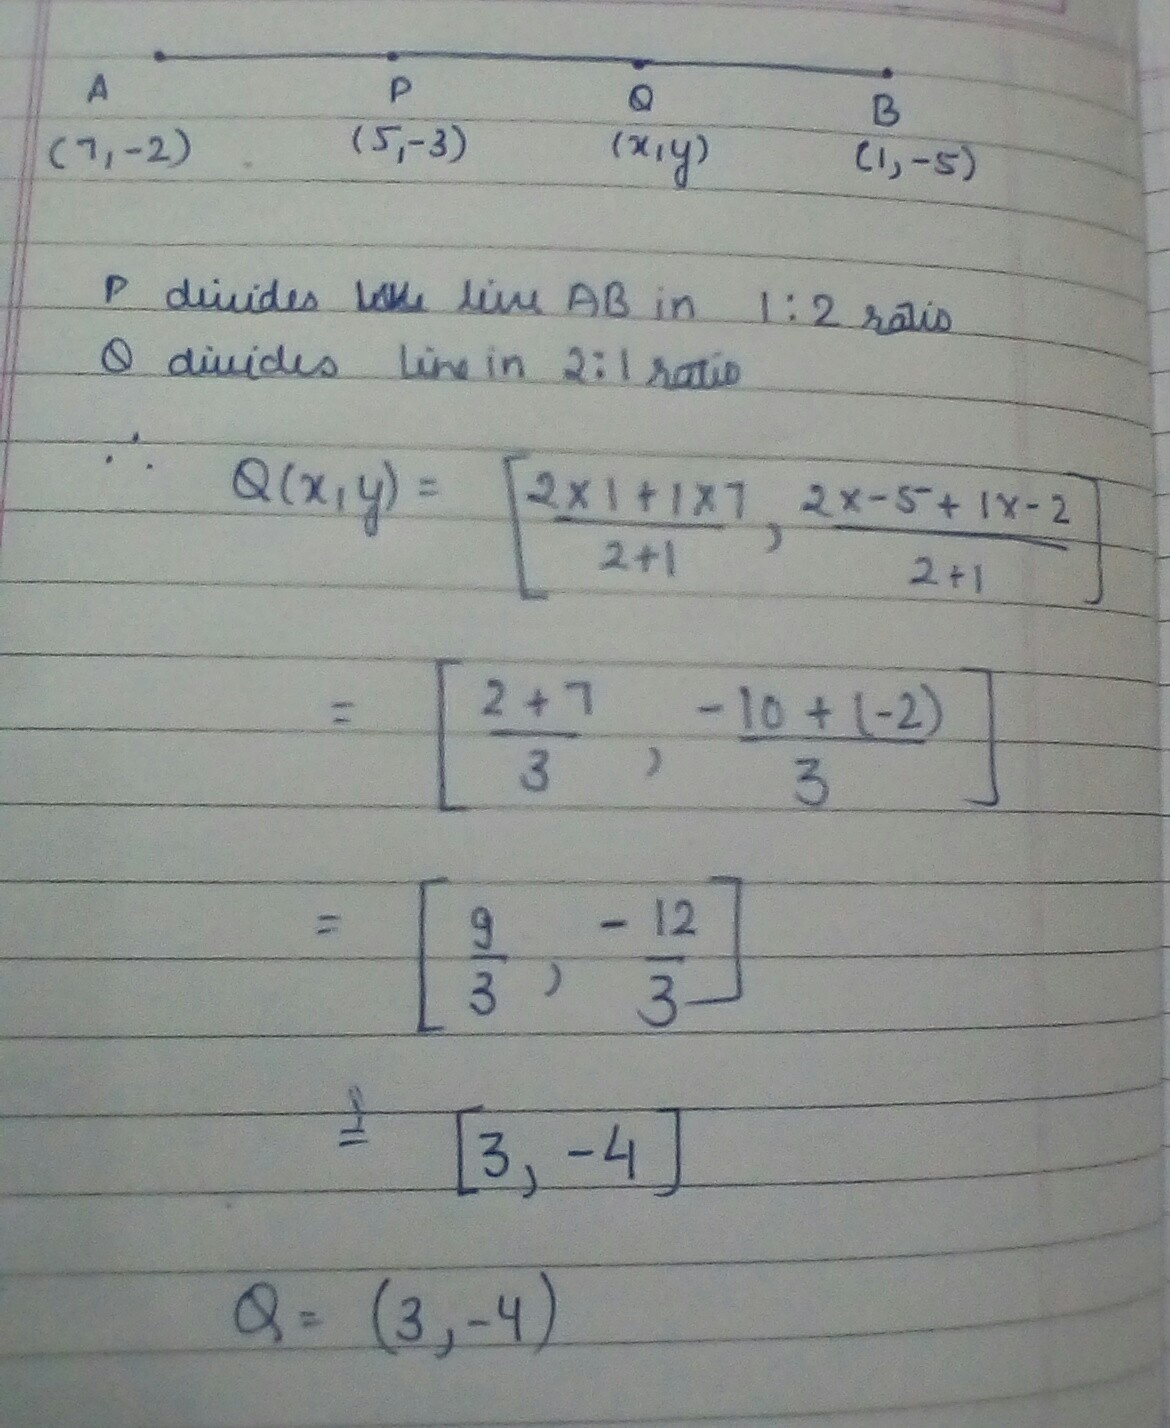 Point P(5,-3) Is One Of The Point Of Trisection Of The